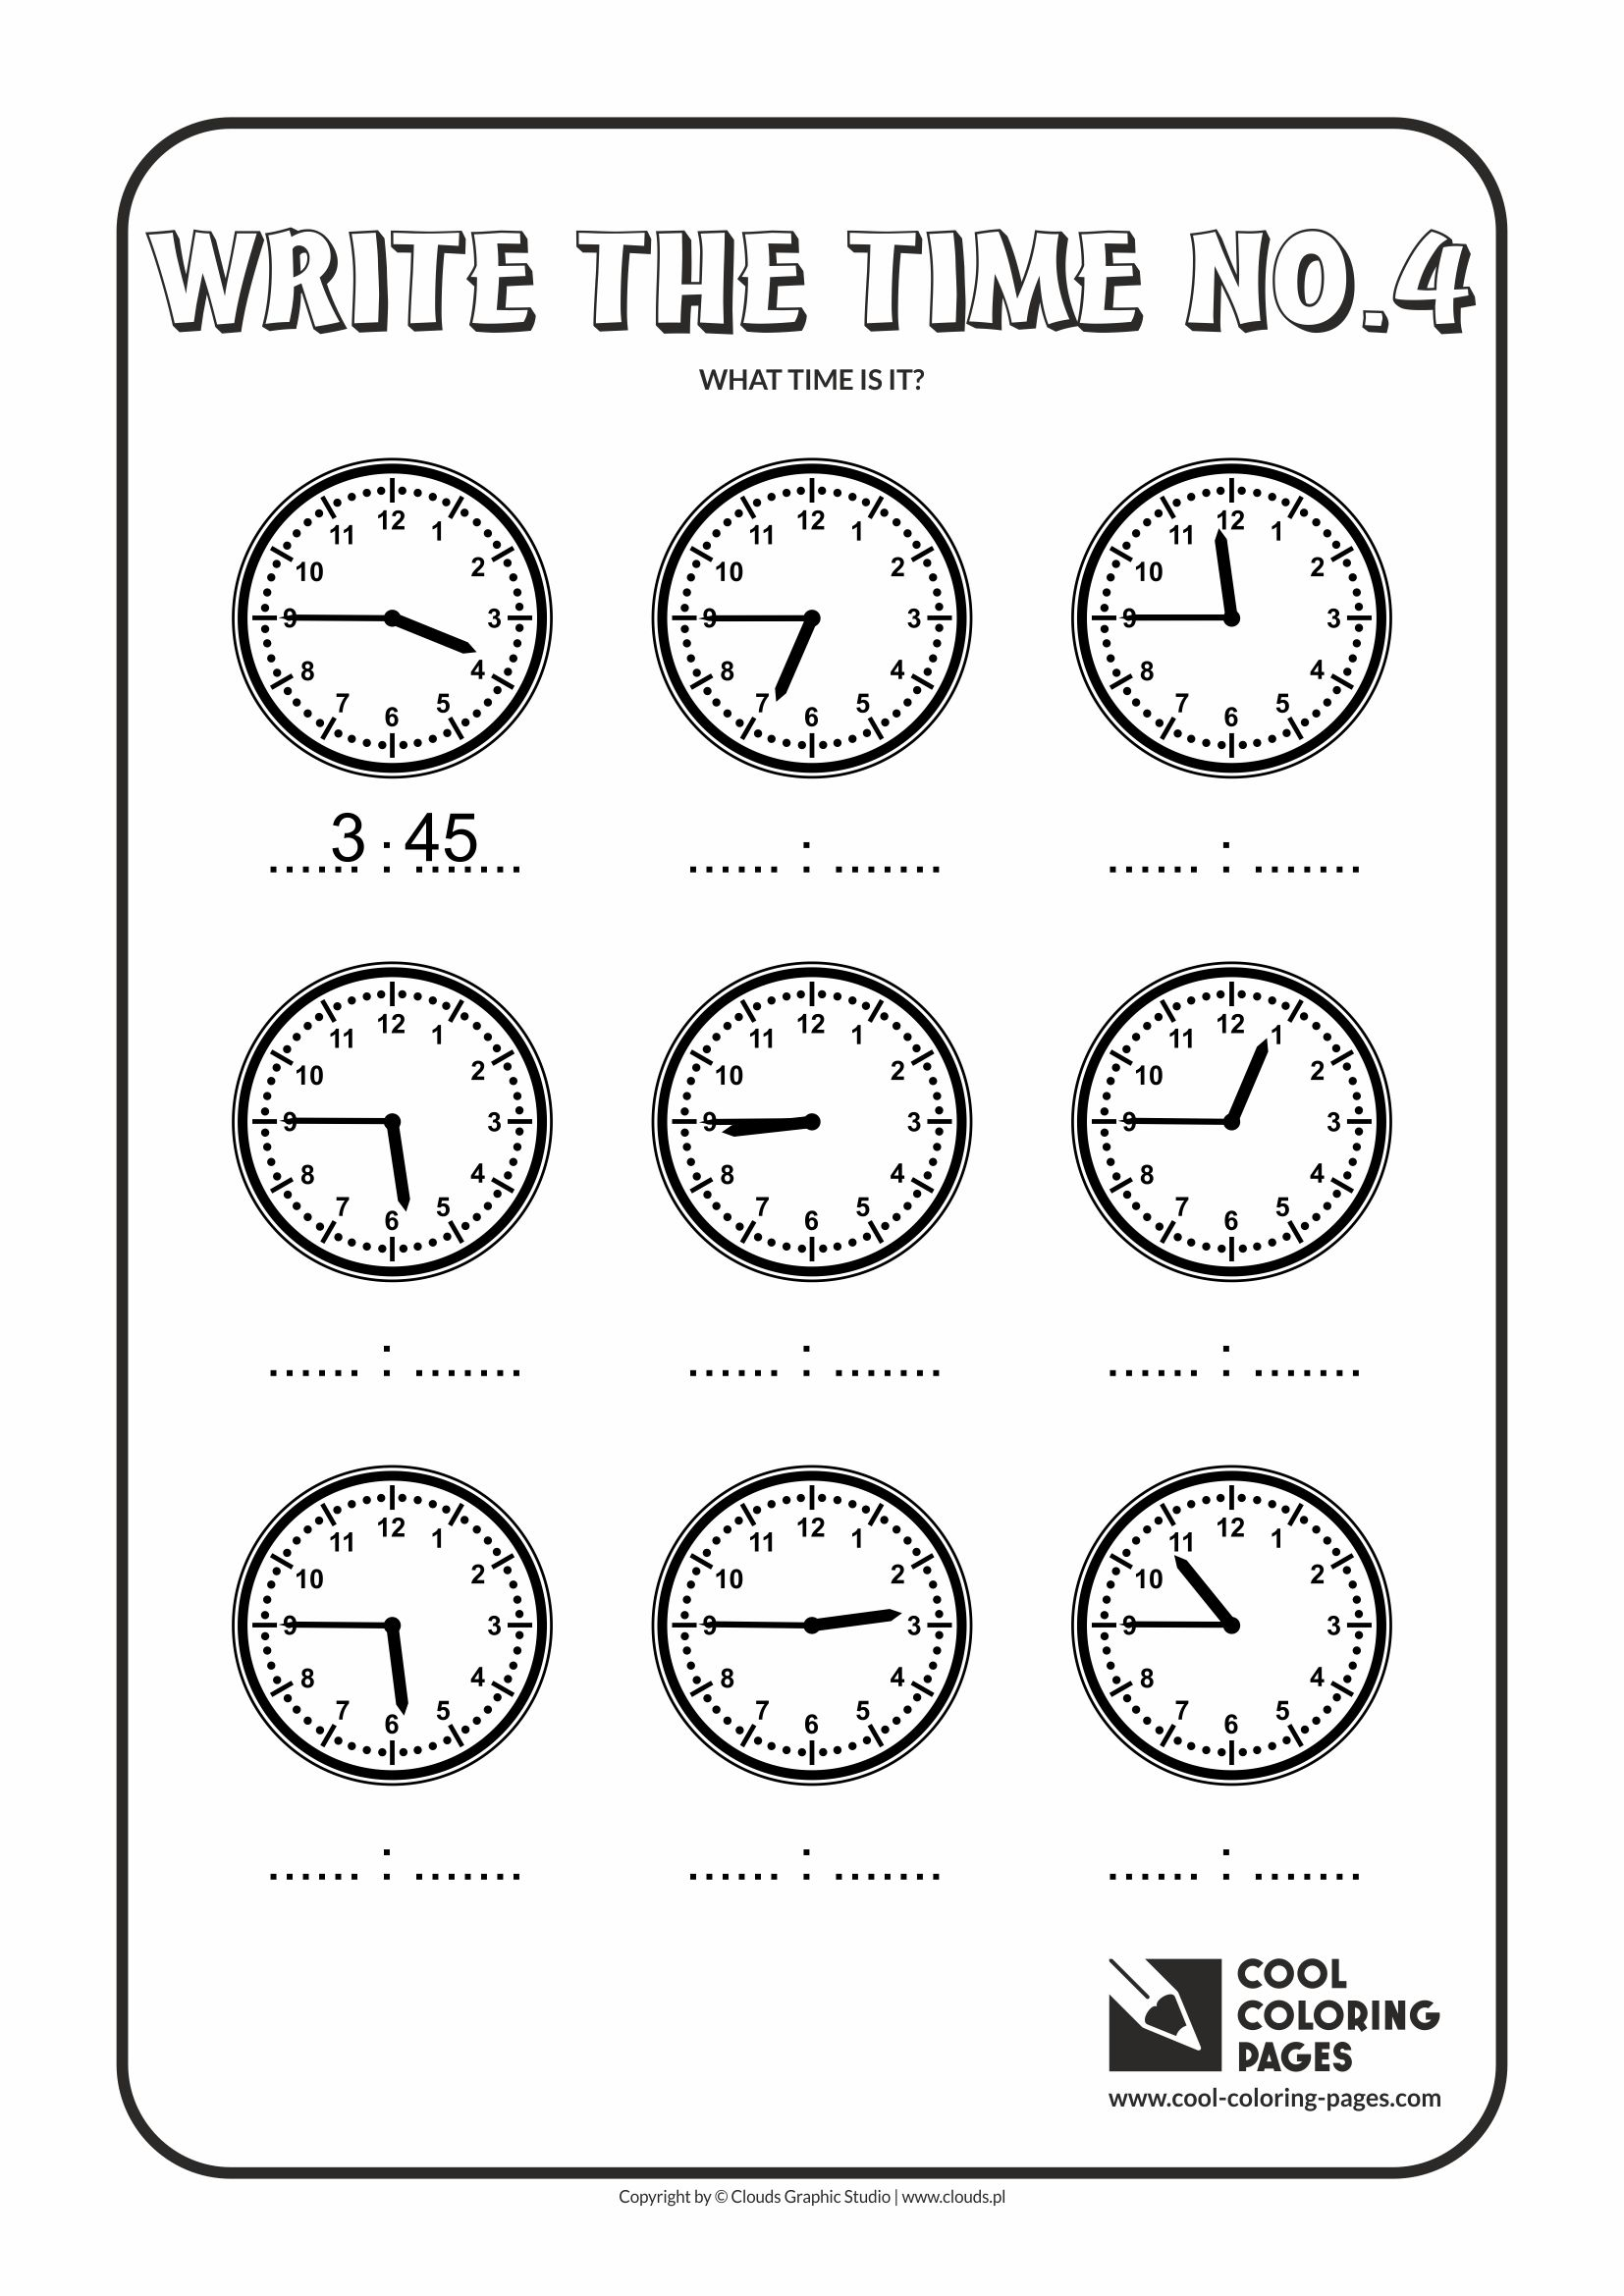 cool coloring pages write the time no 4